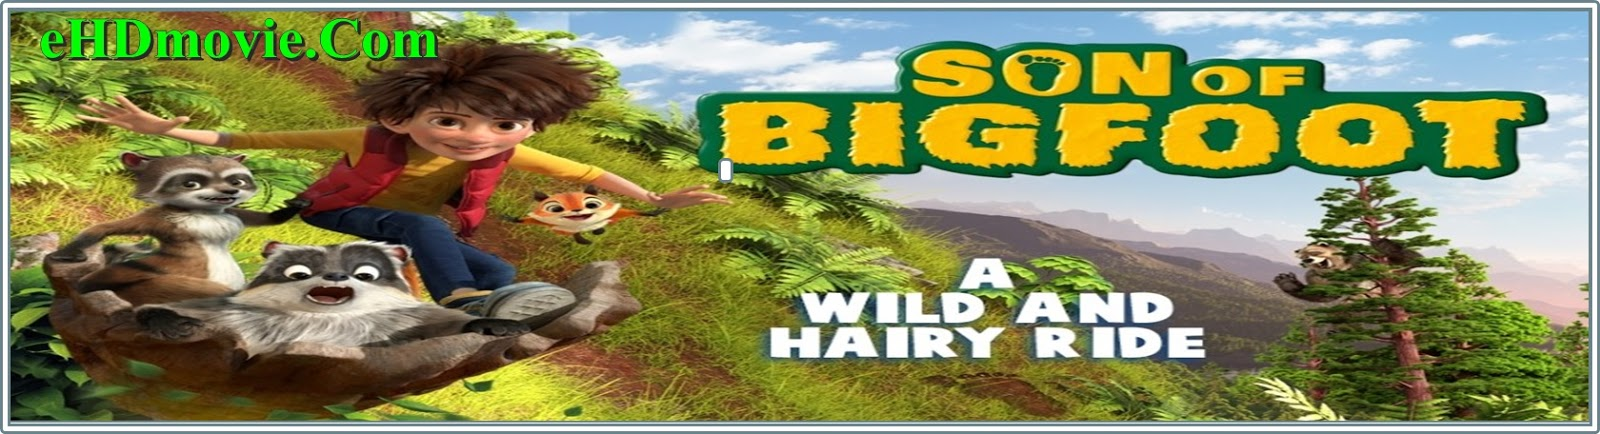 The Son of Bigfoot 2017 Full Movie English 720p - 480p ORG BRRip 350MB - 700MB ESubs Free Download